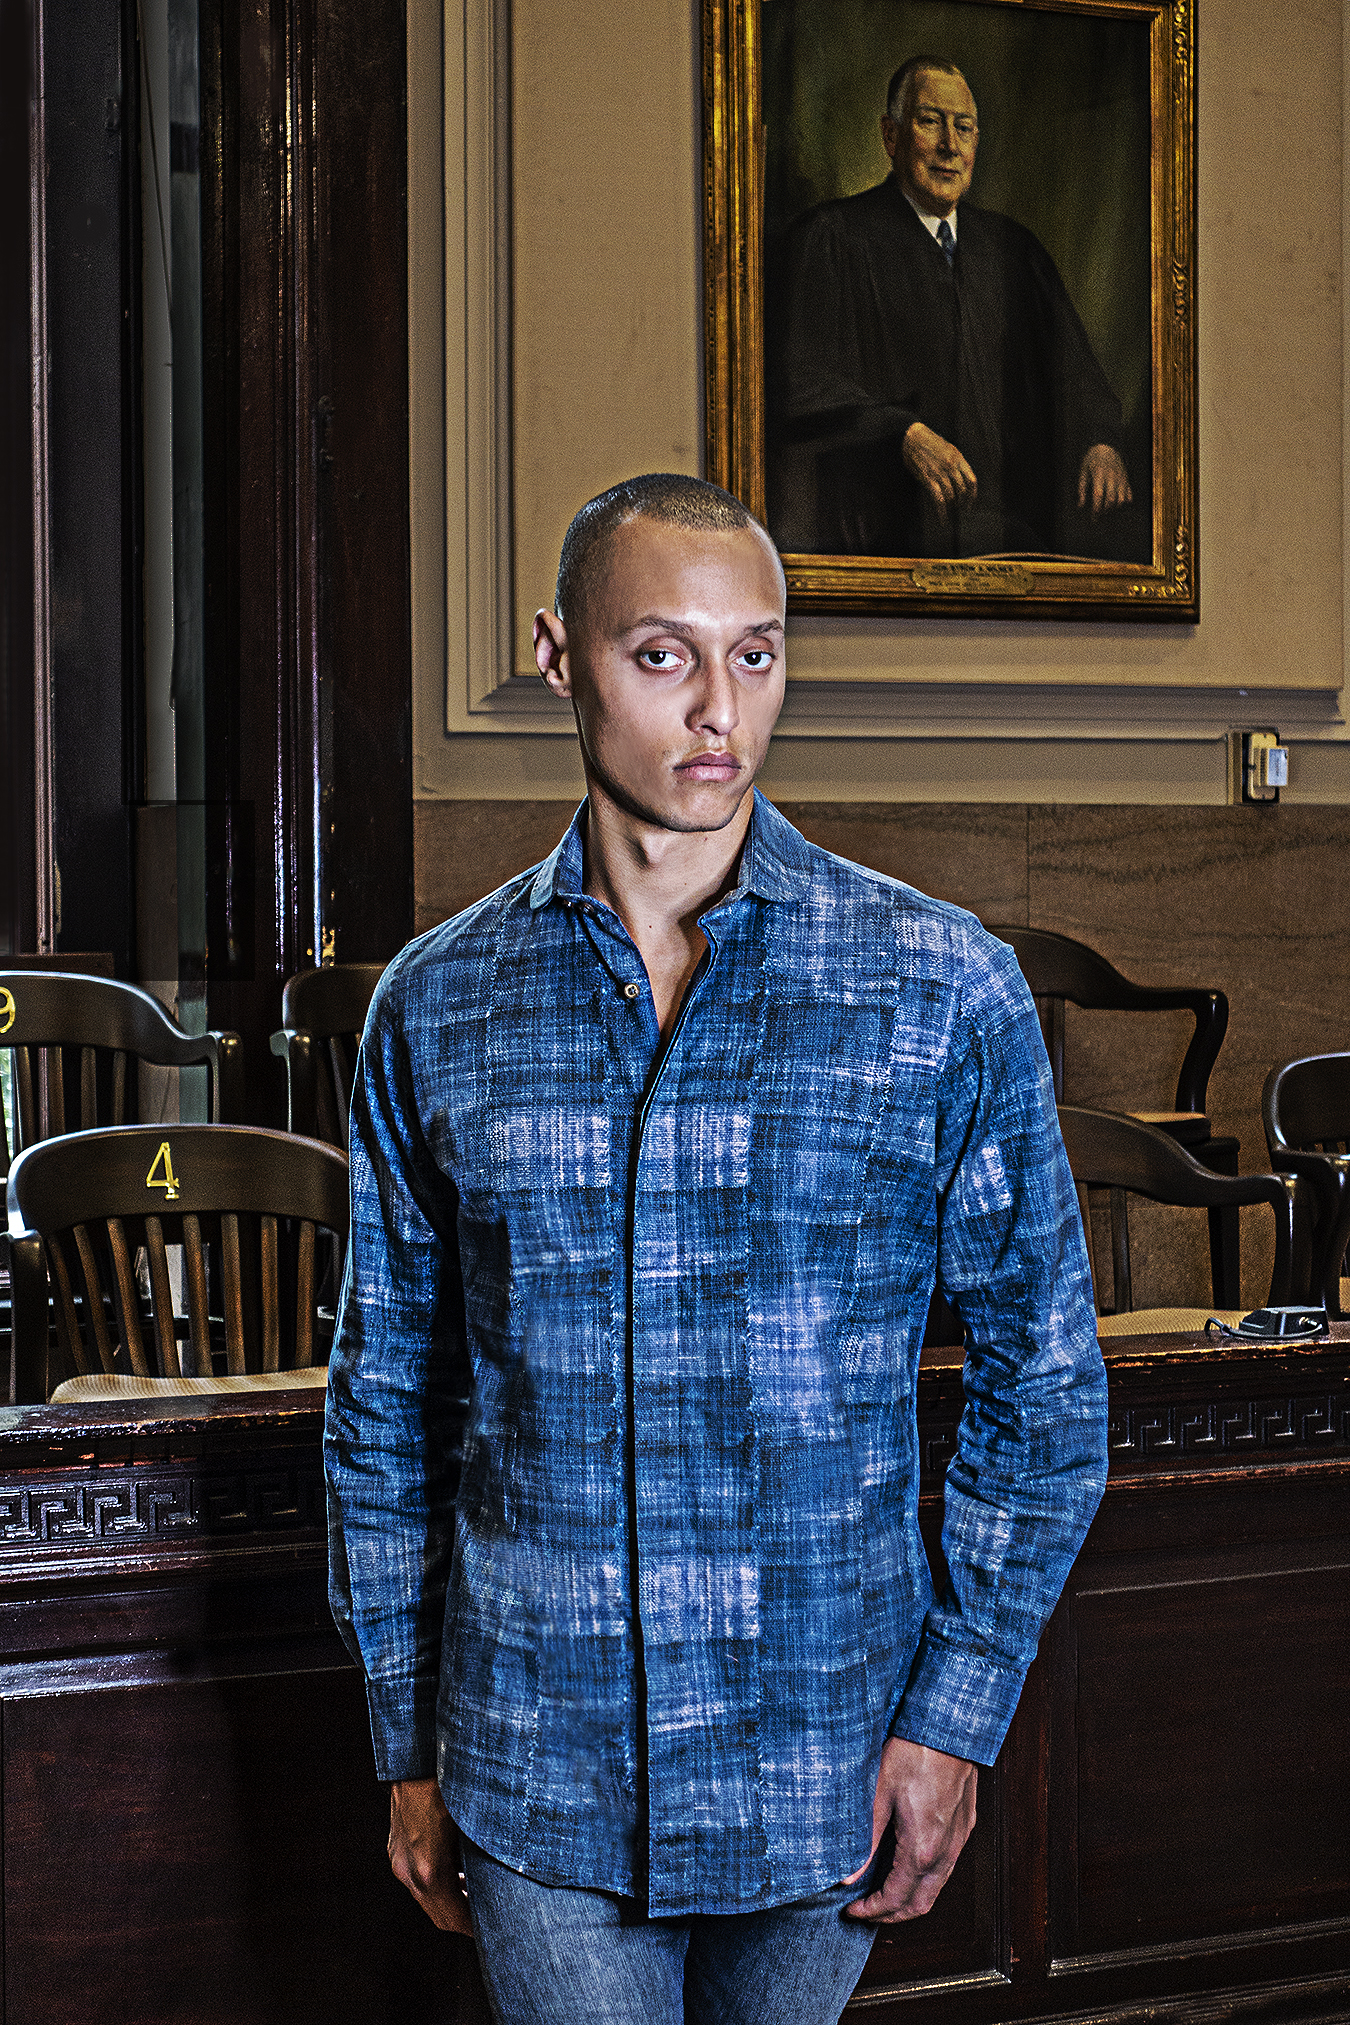 Tony_Ward_Studio_article_Julian_Domanico_courtroom_city_hall_old_school_shirtmakers_new_york_pablue_dress_shirt